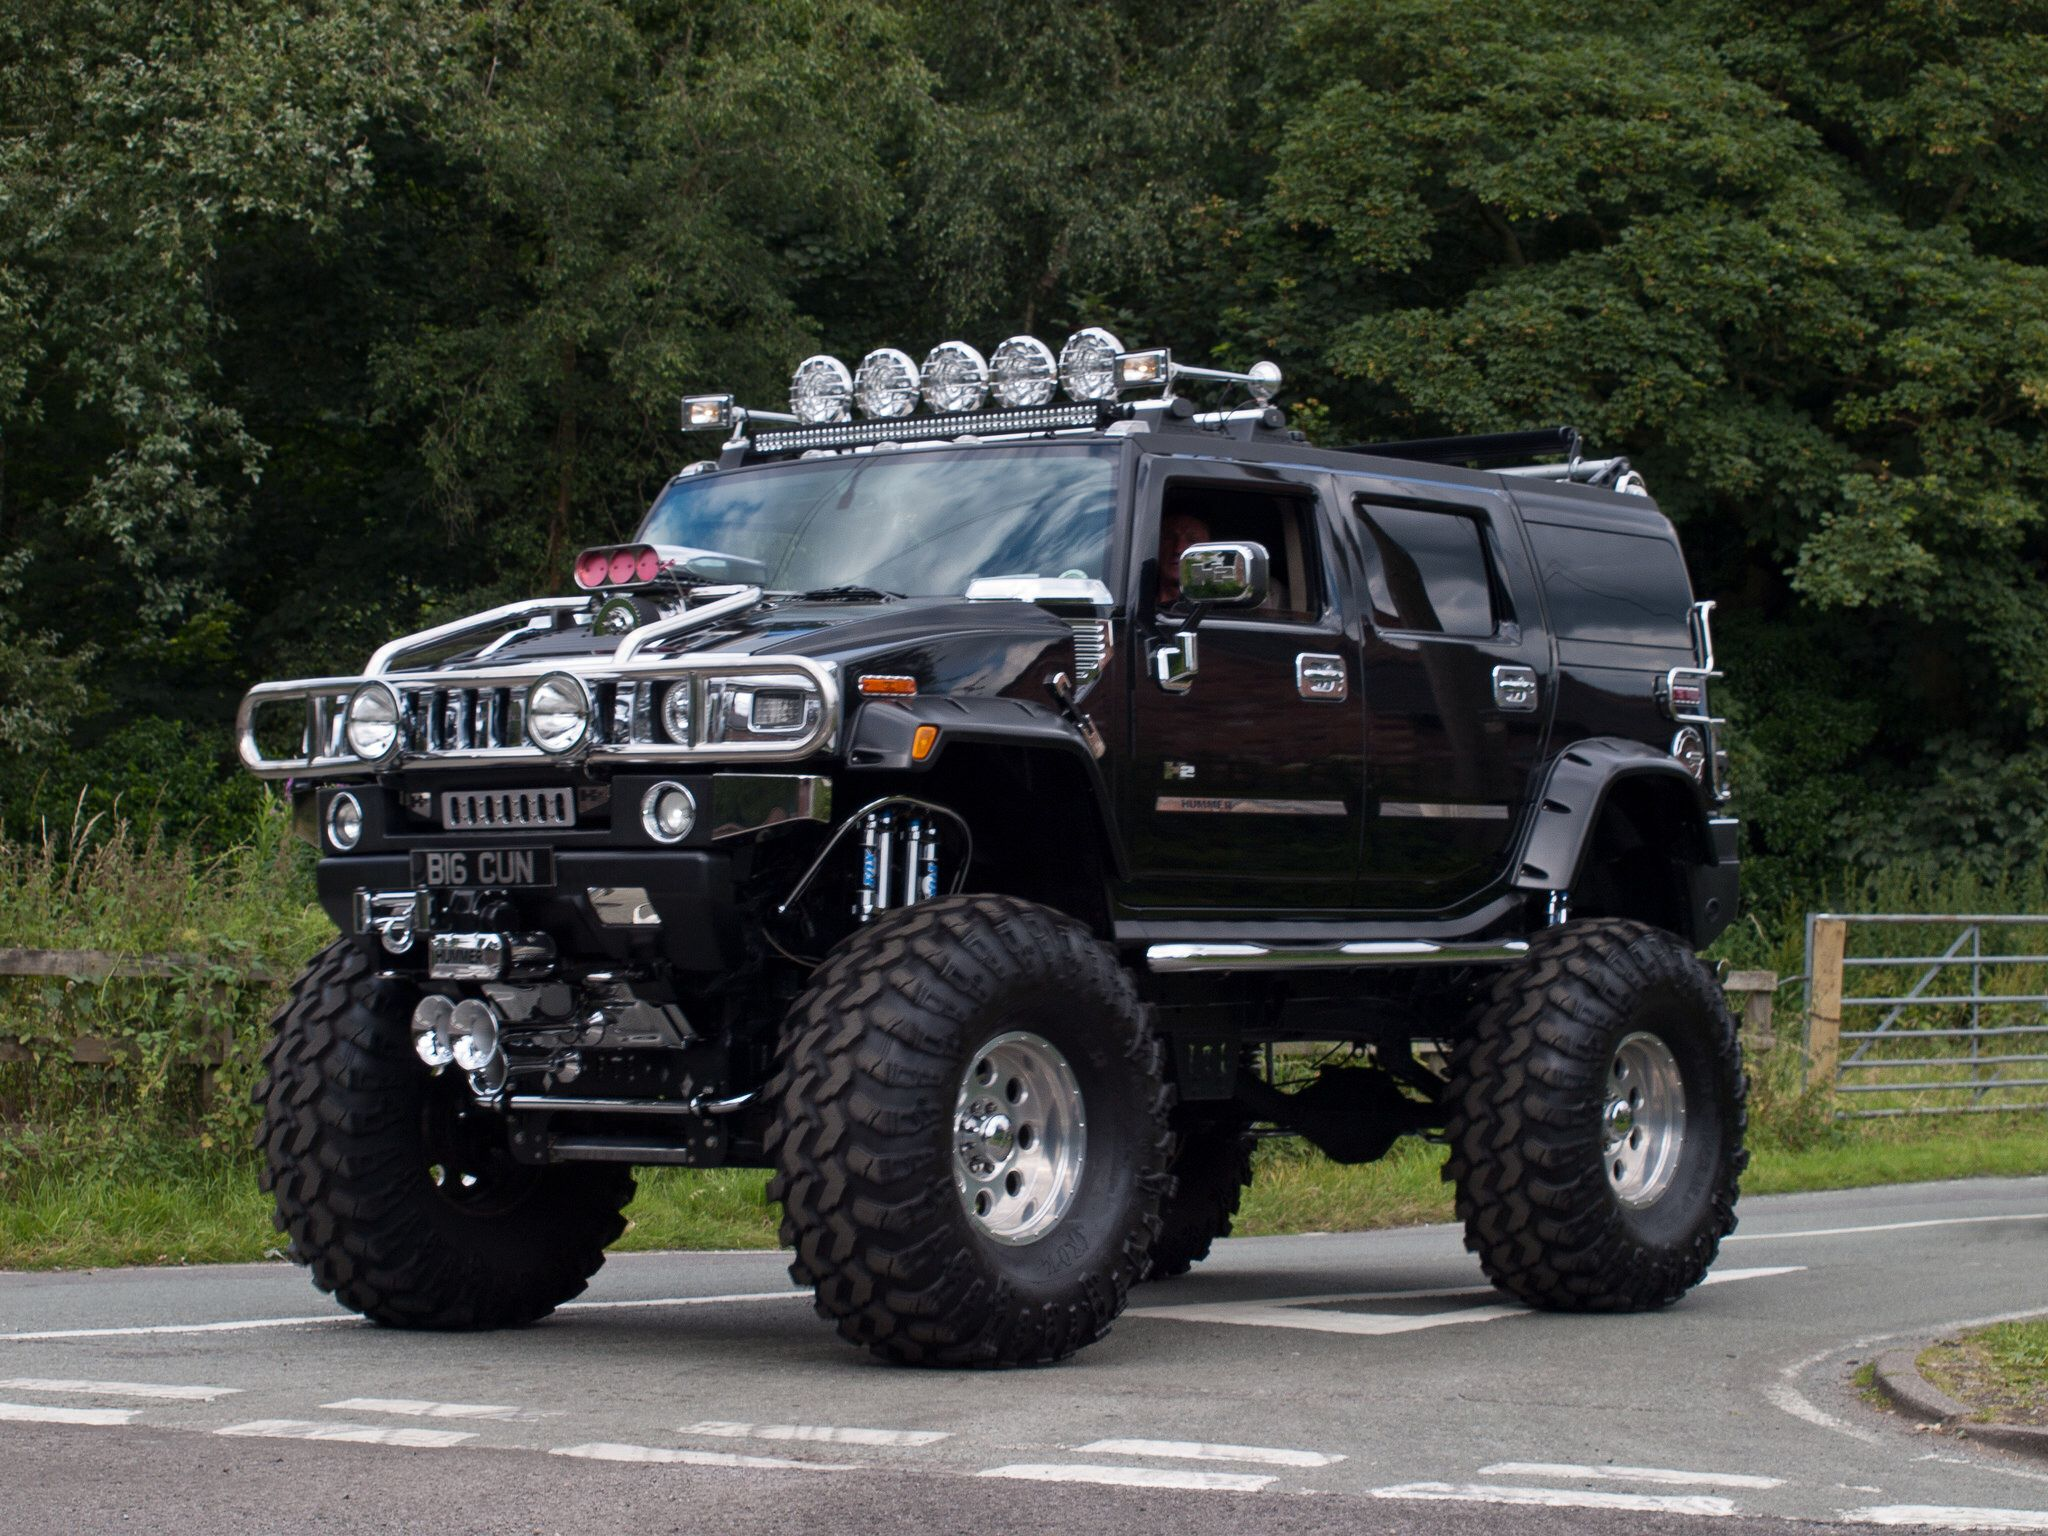 Hummer h3 lifted lifted h3 or h3t pics hummers pinterest b16 cun hummer h2 vanachro Gallery